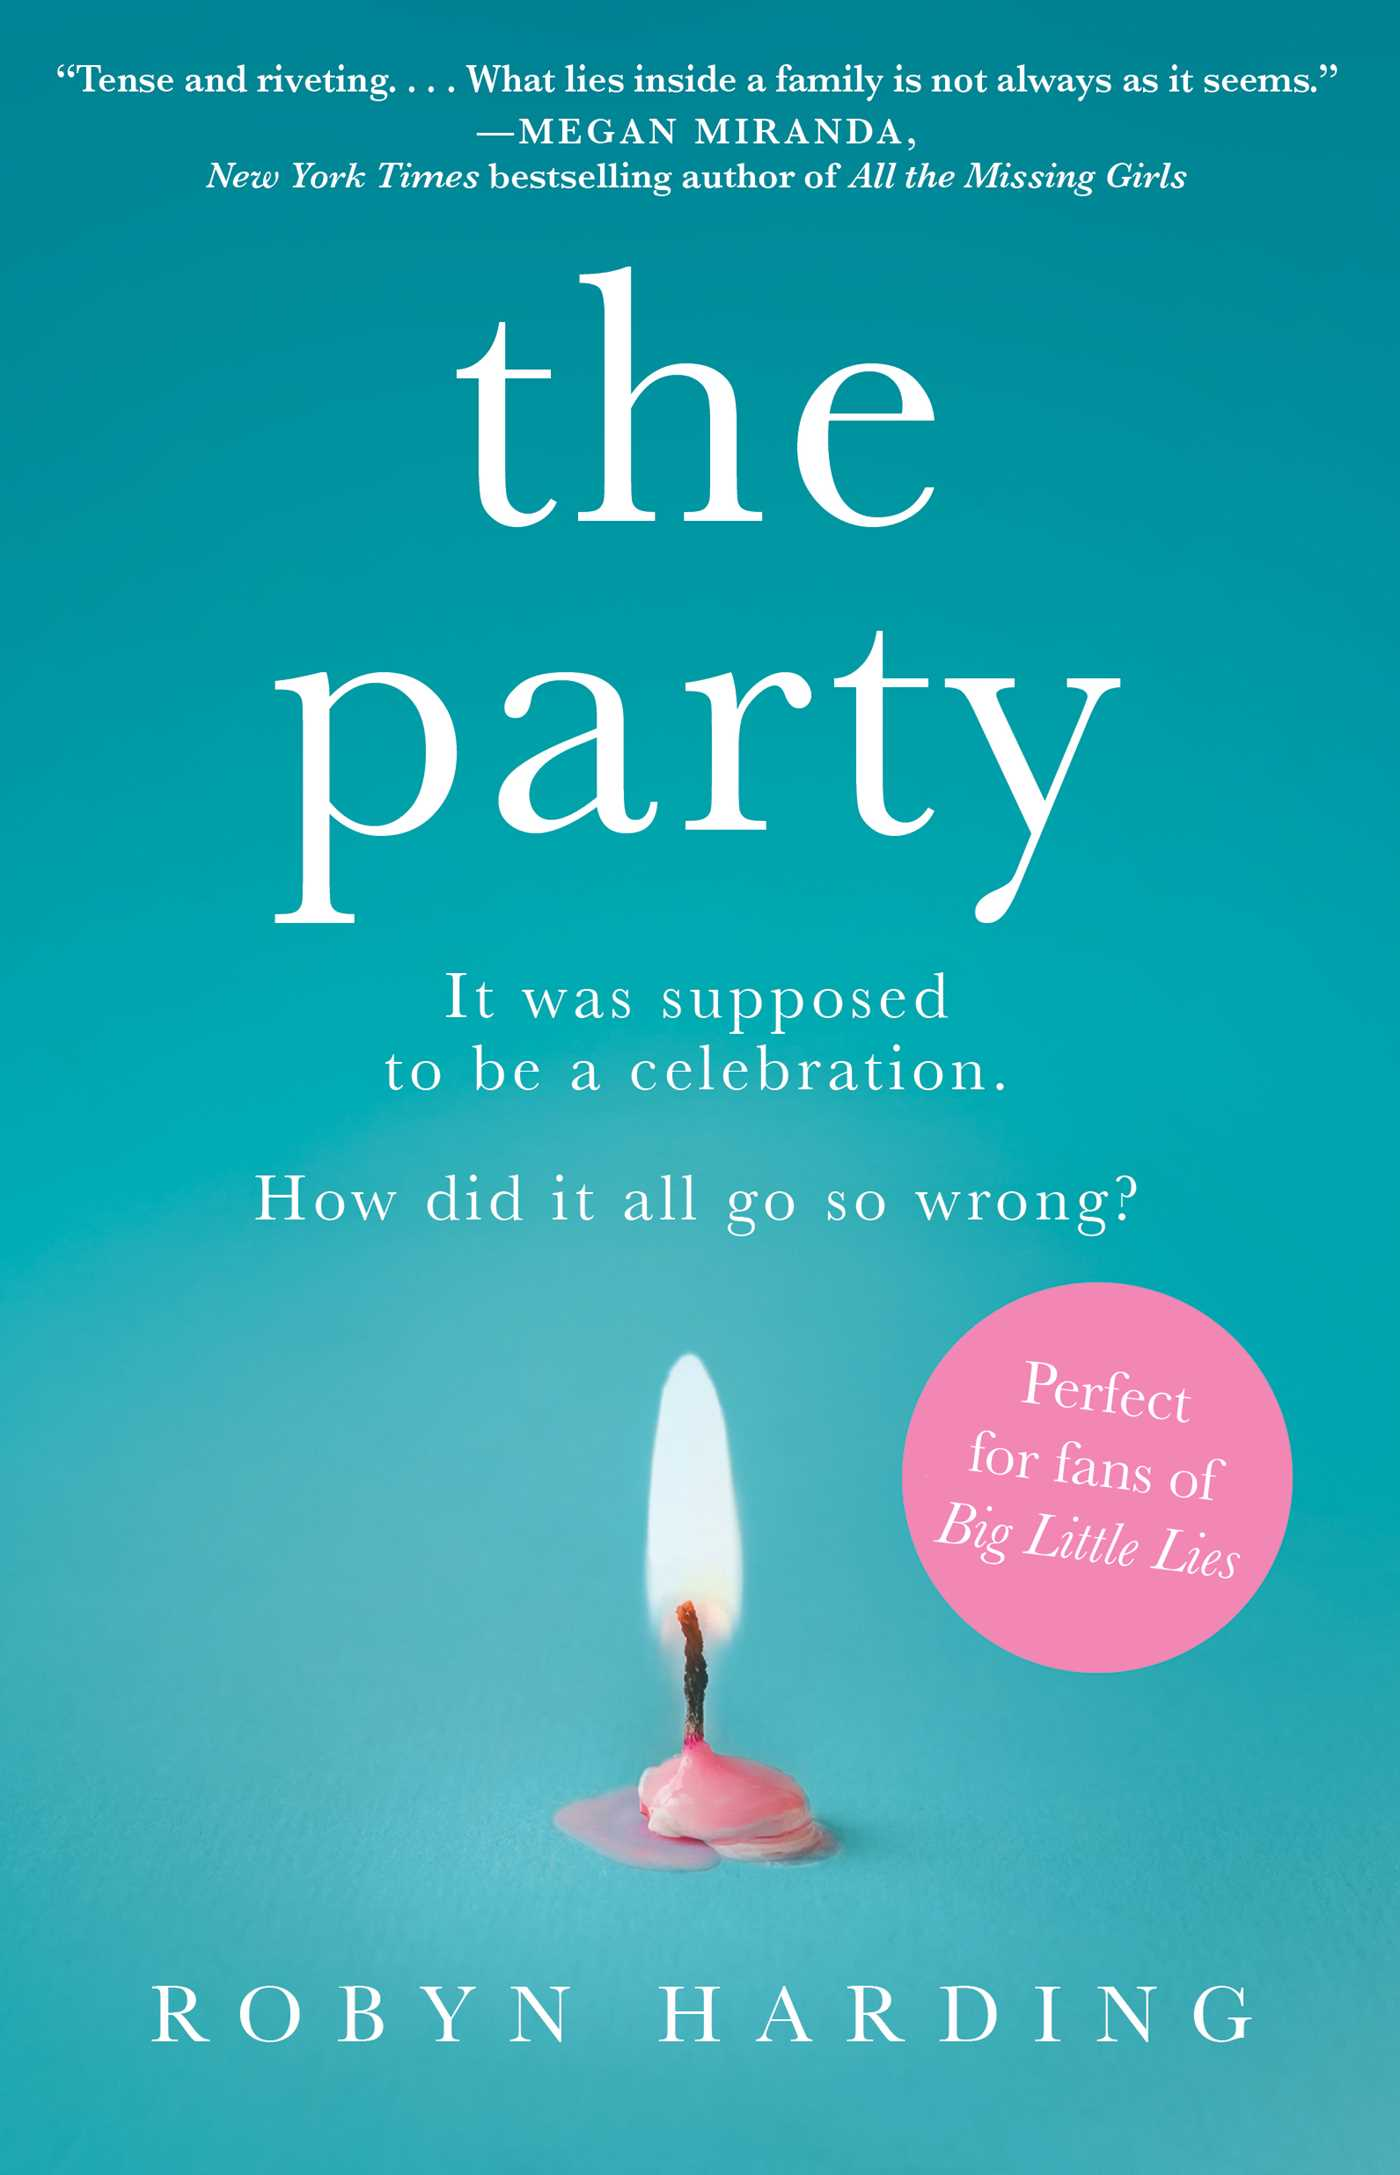 The party 9781501161292 hr